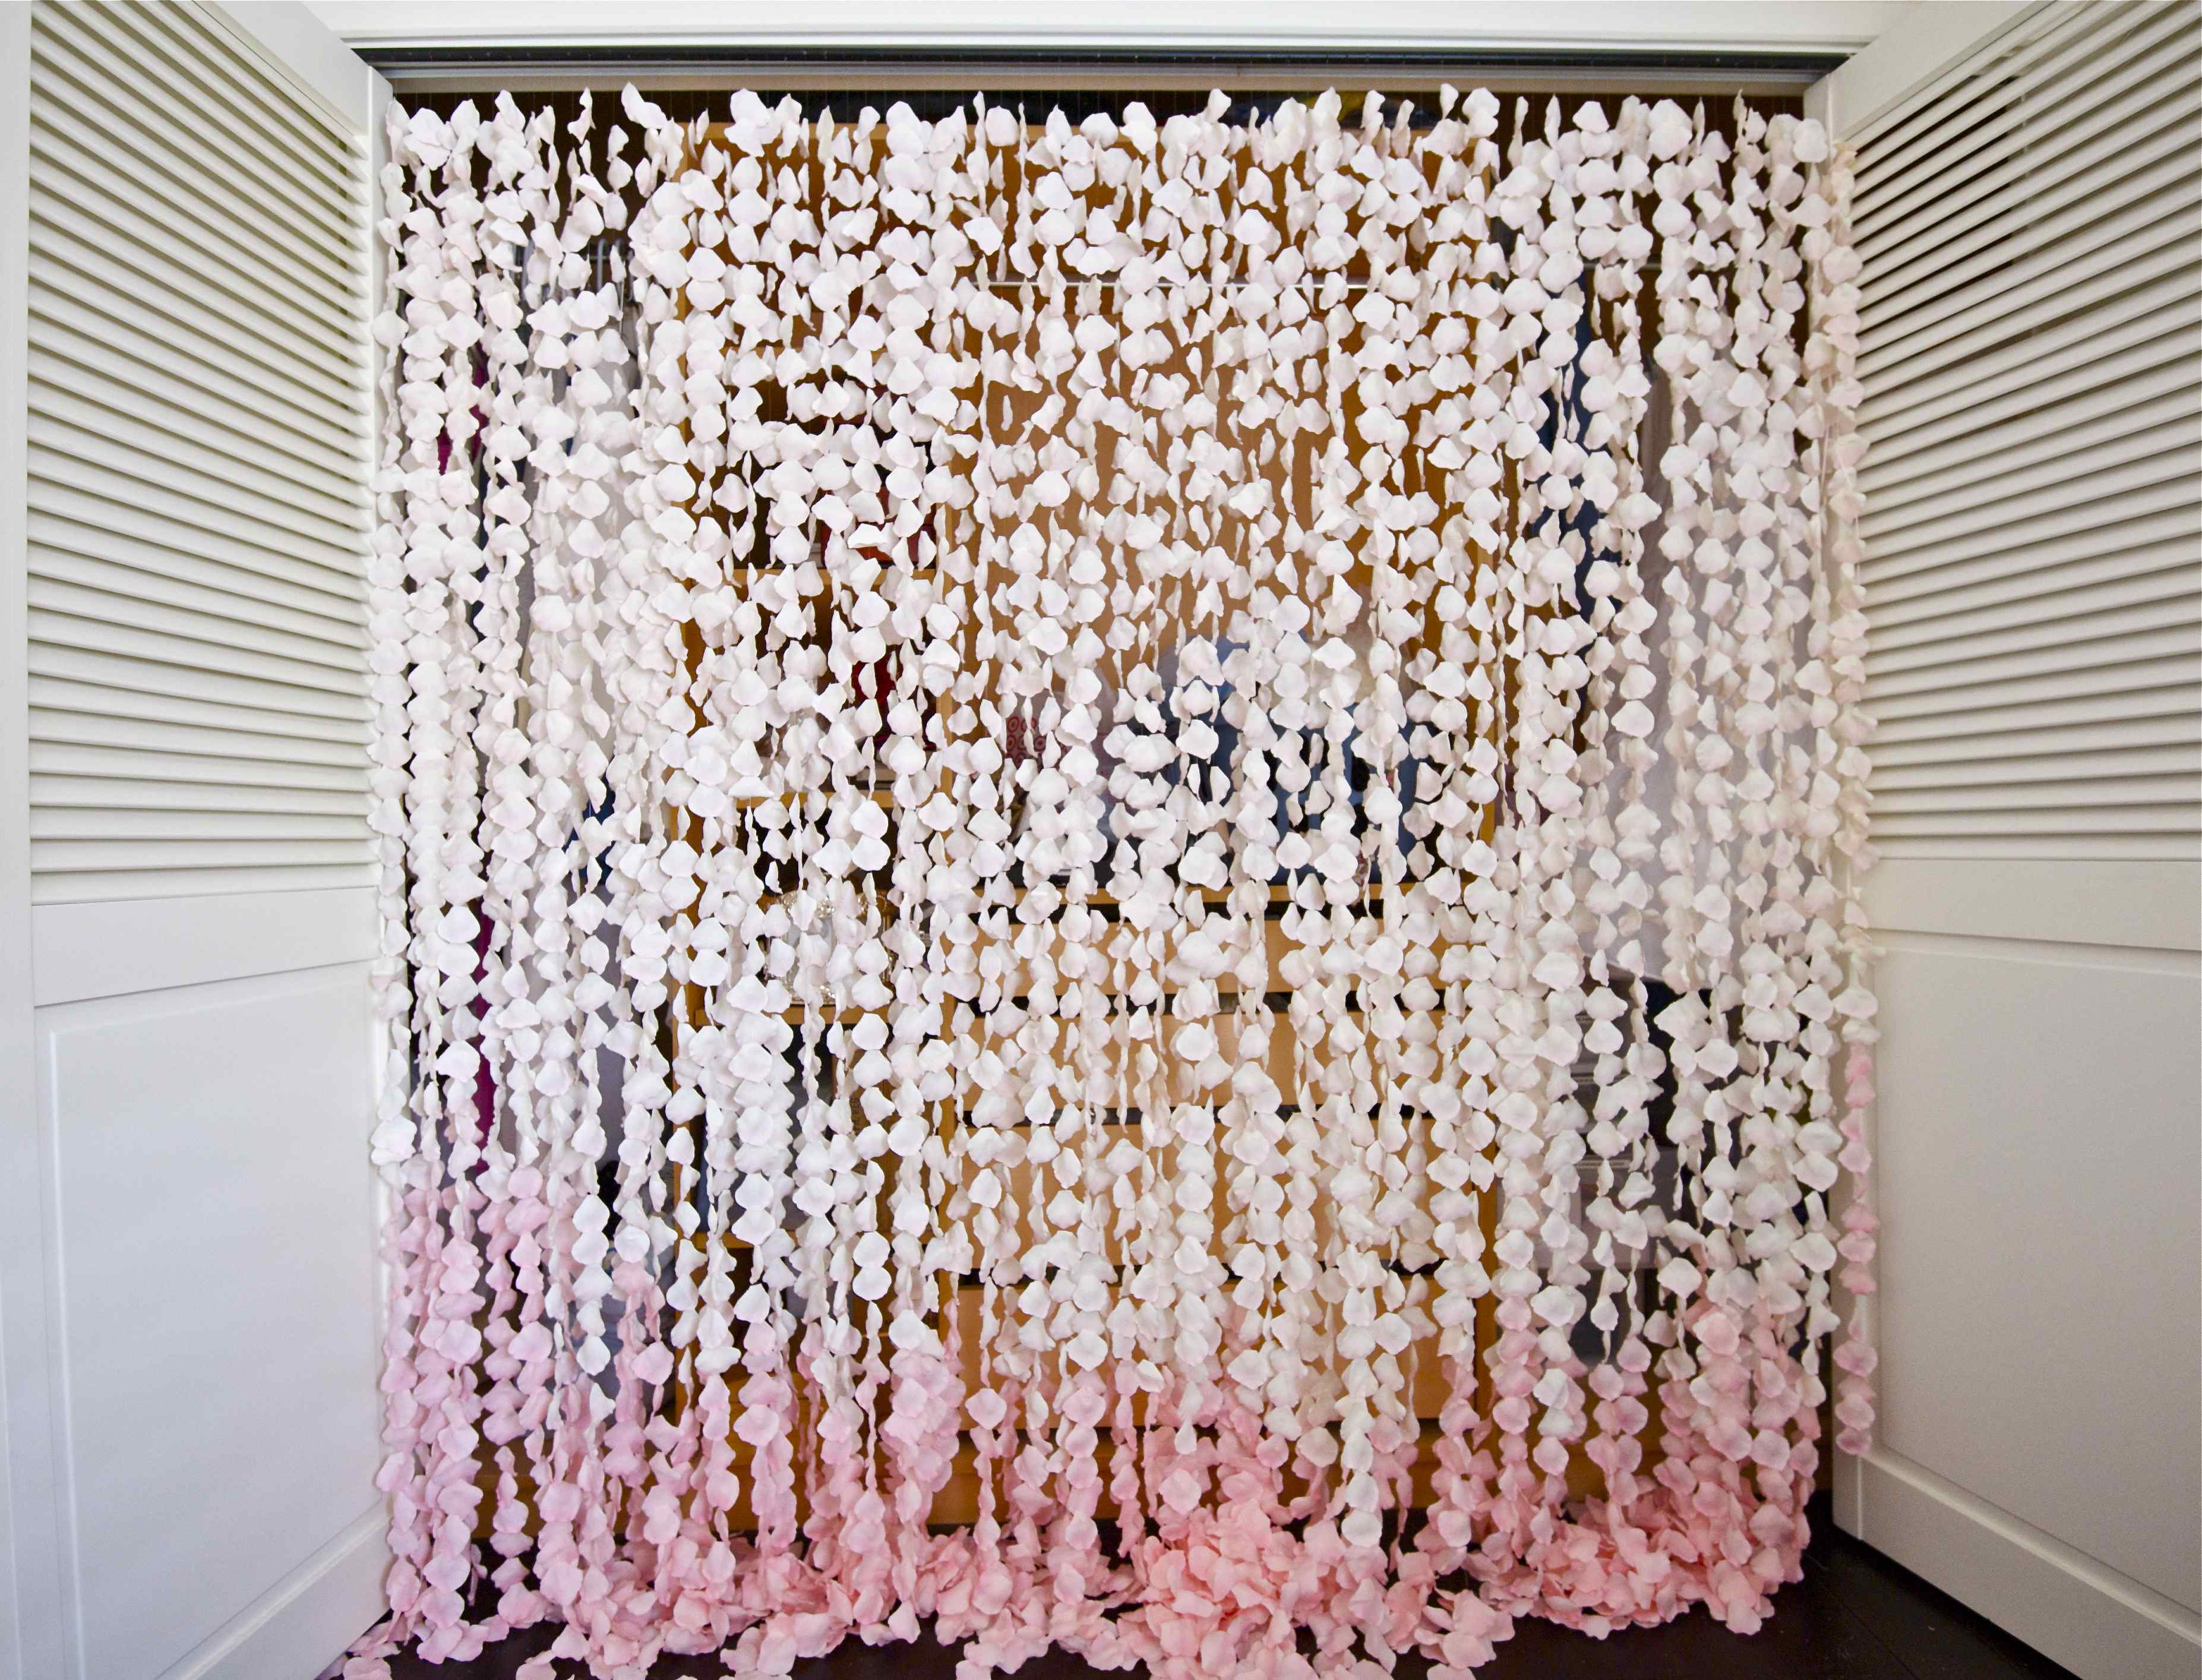 home shades curtain target for your bali barn martha stick ikea decor ideas interior sheer treatments pottery vinyl cheap white treatment peel rugs mini with blackout window stewart wallpaper curtains and